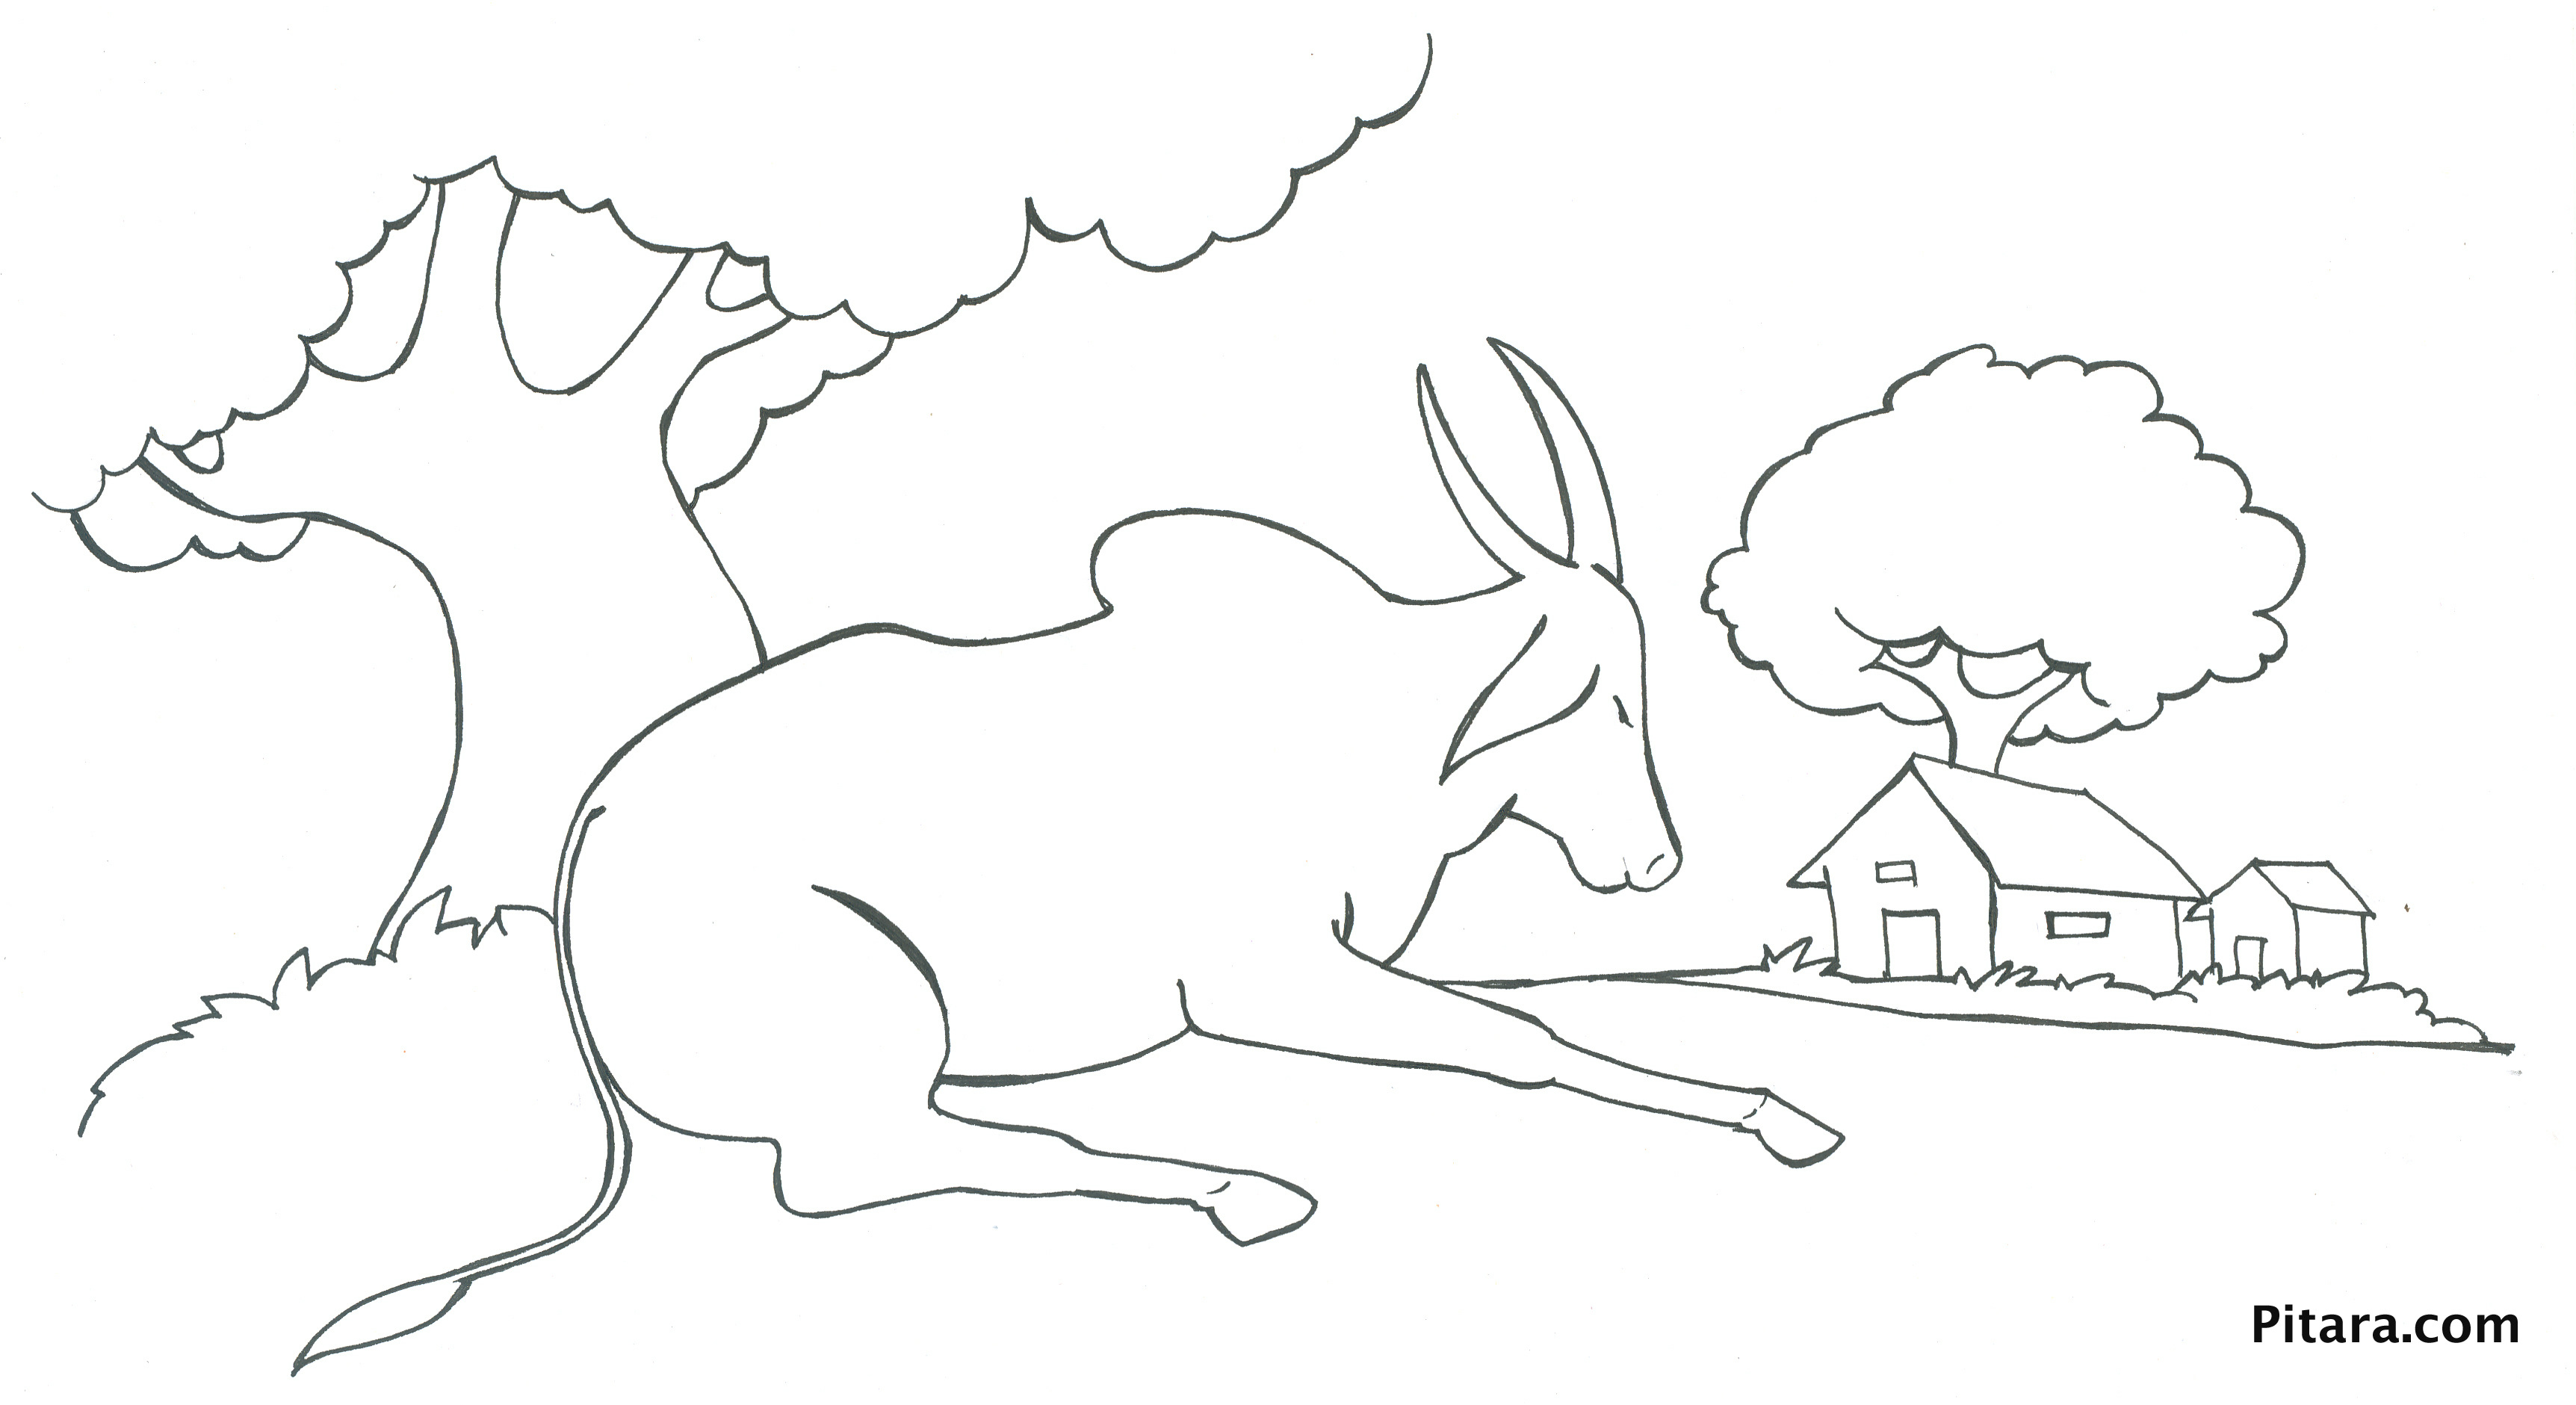 domestic animals coloring pages pitara kids network